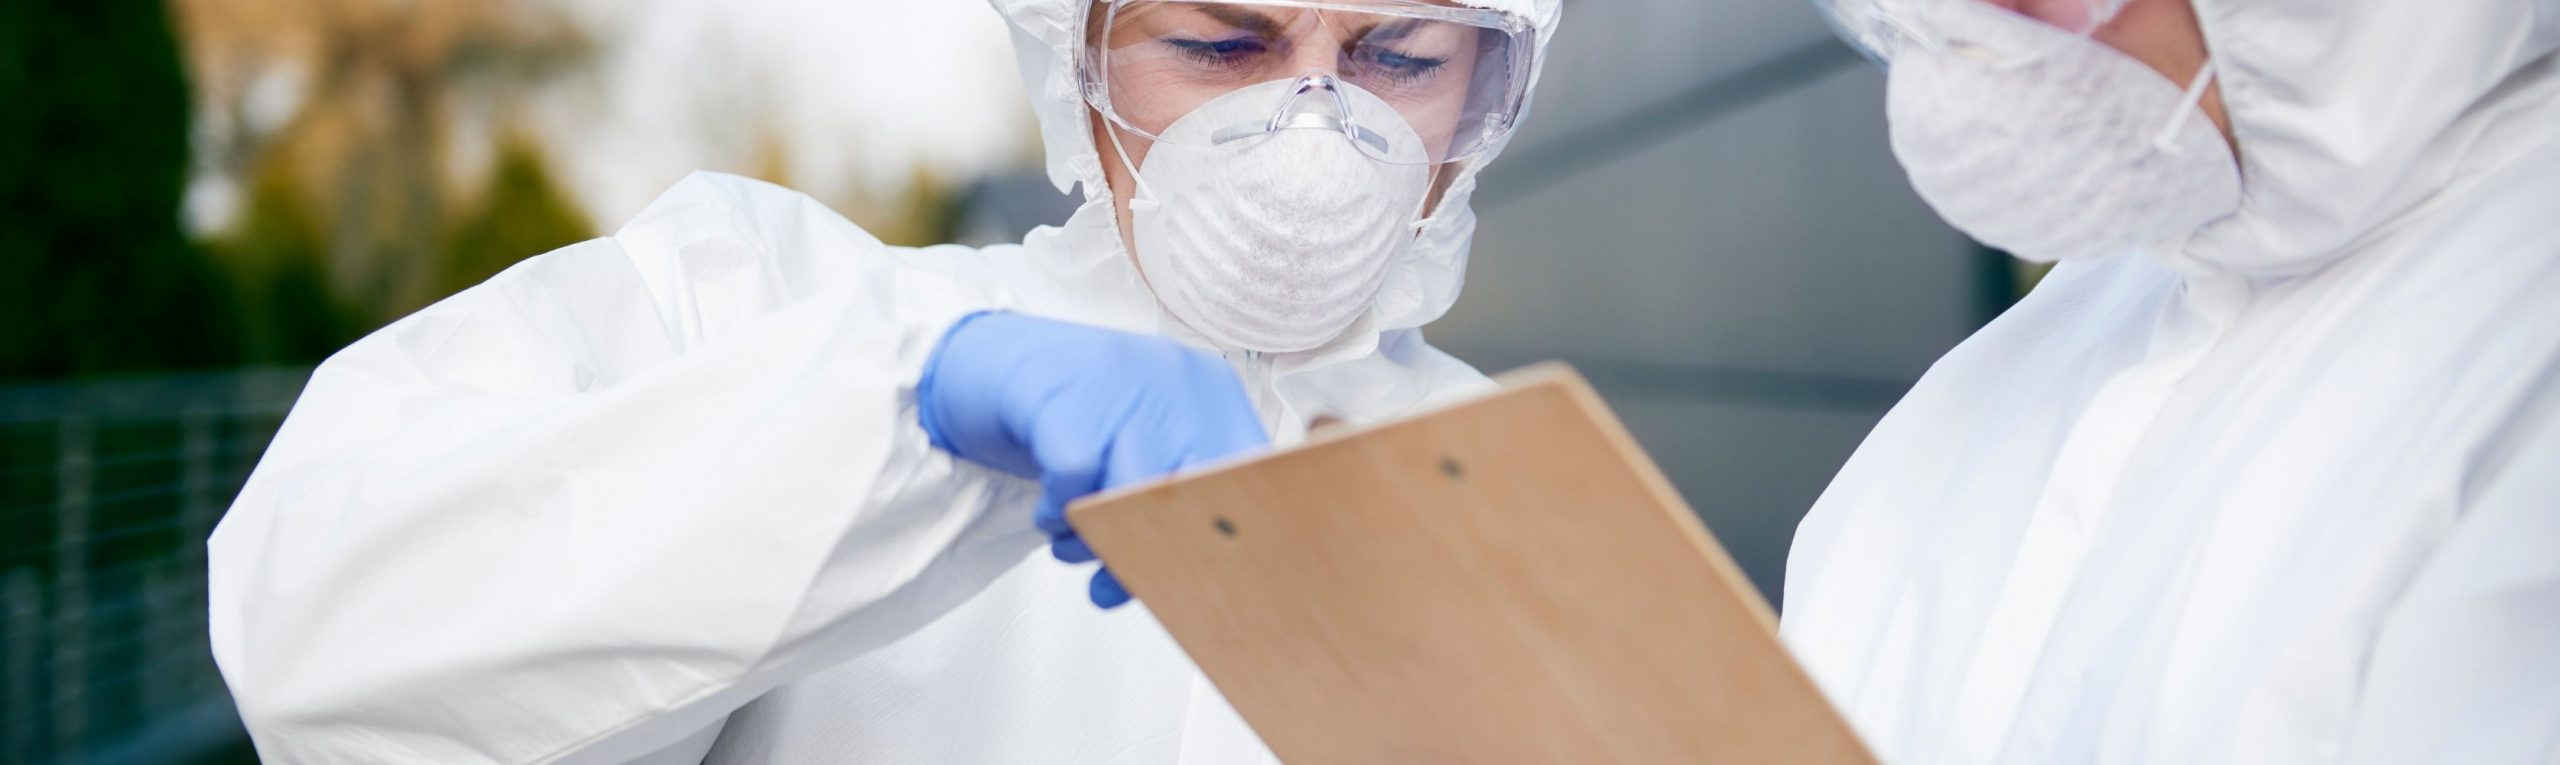 working in protective suits with ecooline cooling textiles